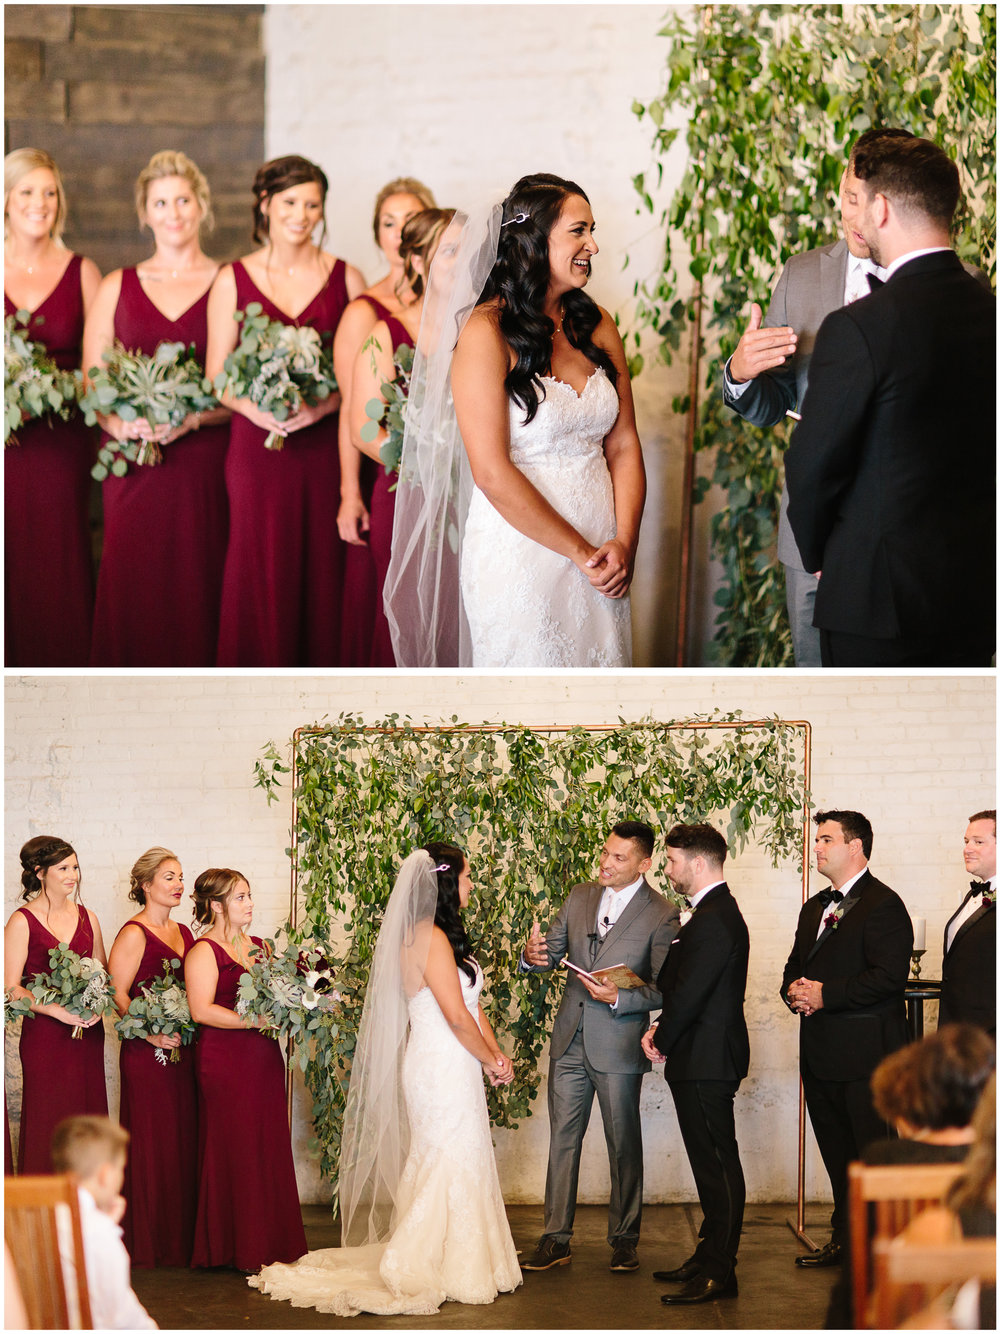 moss_denver_wedding_50.jpg